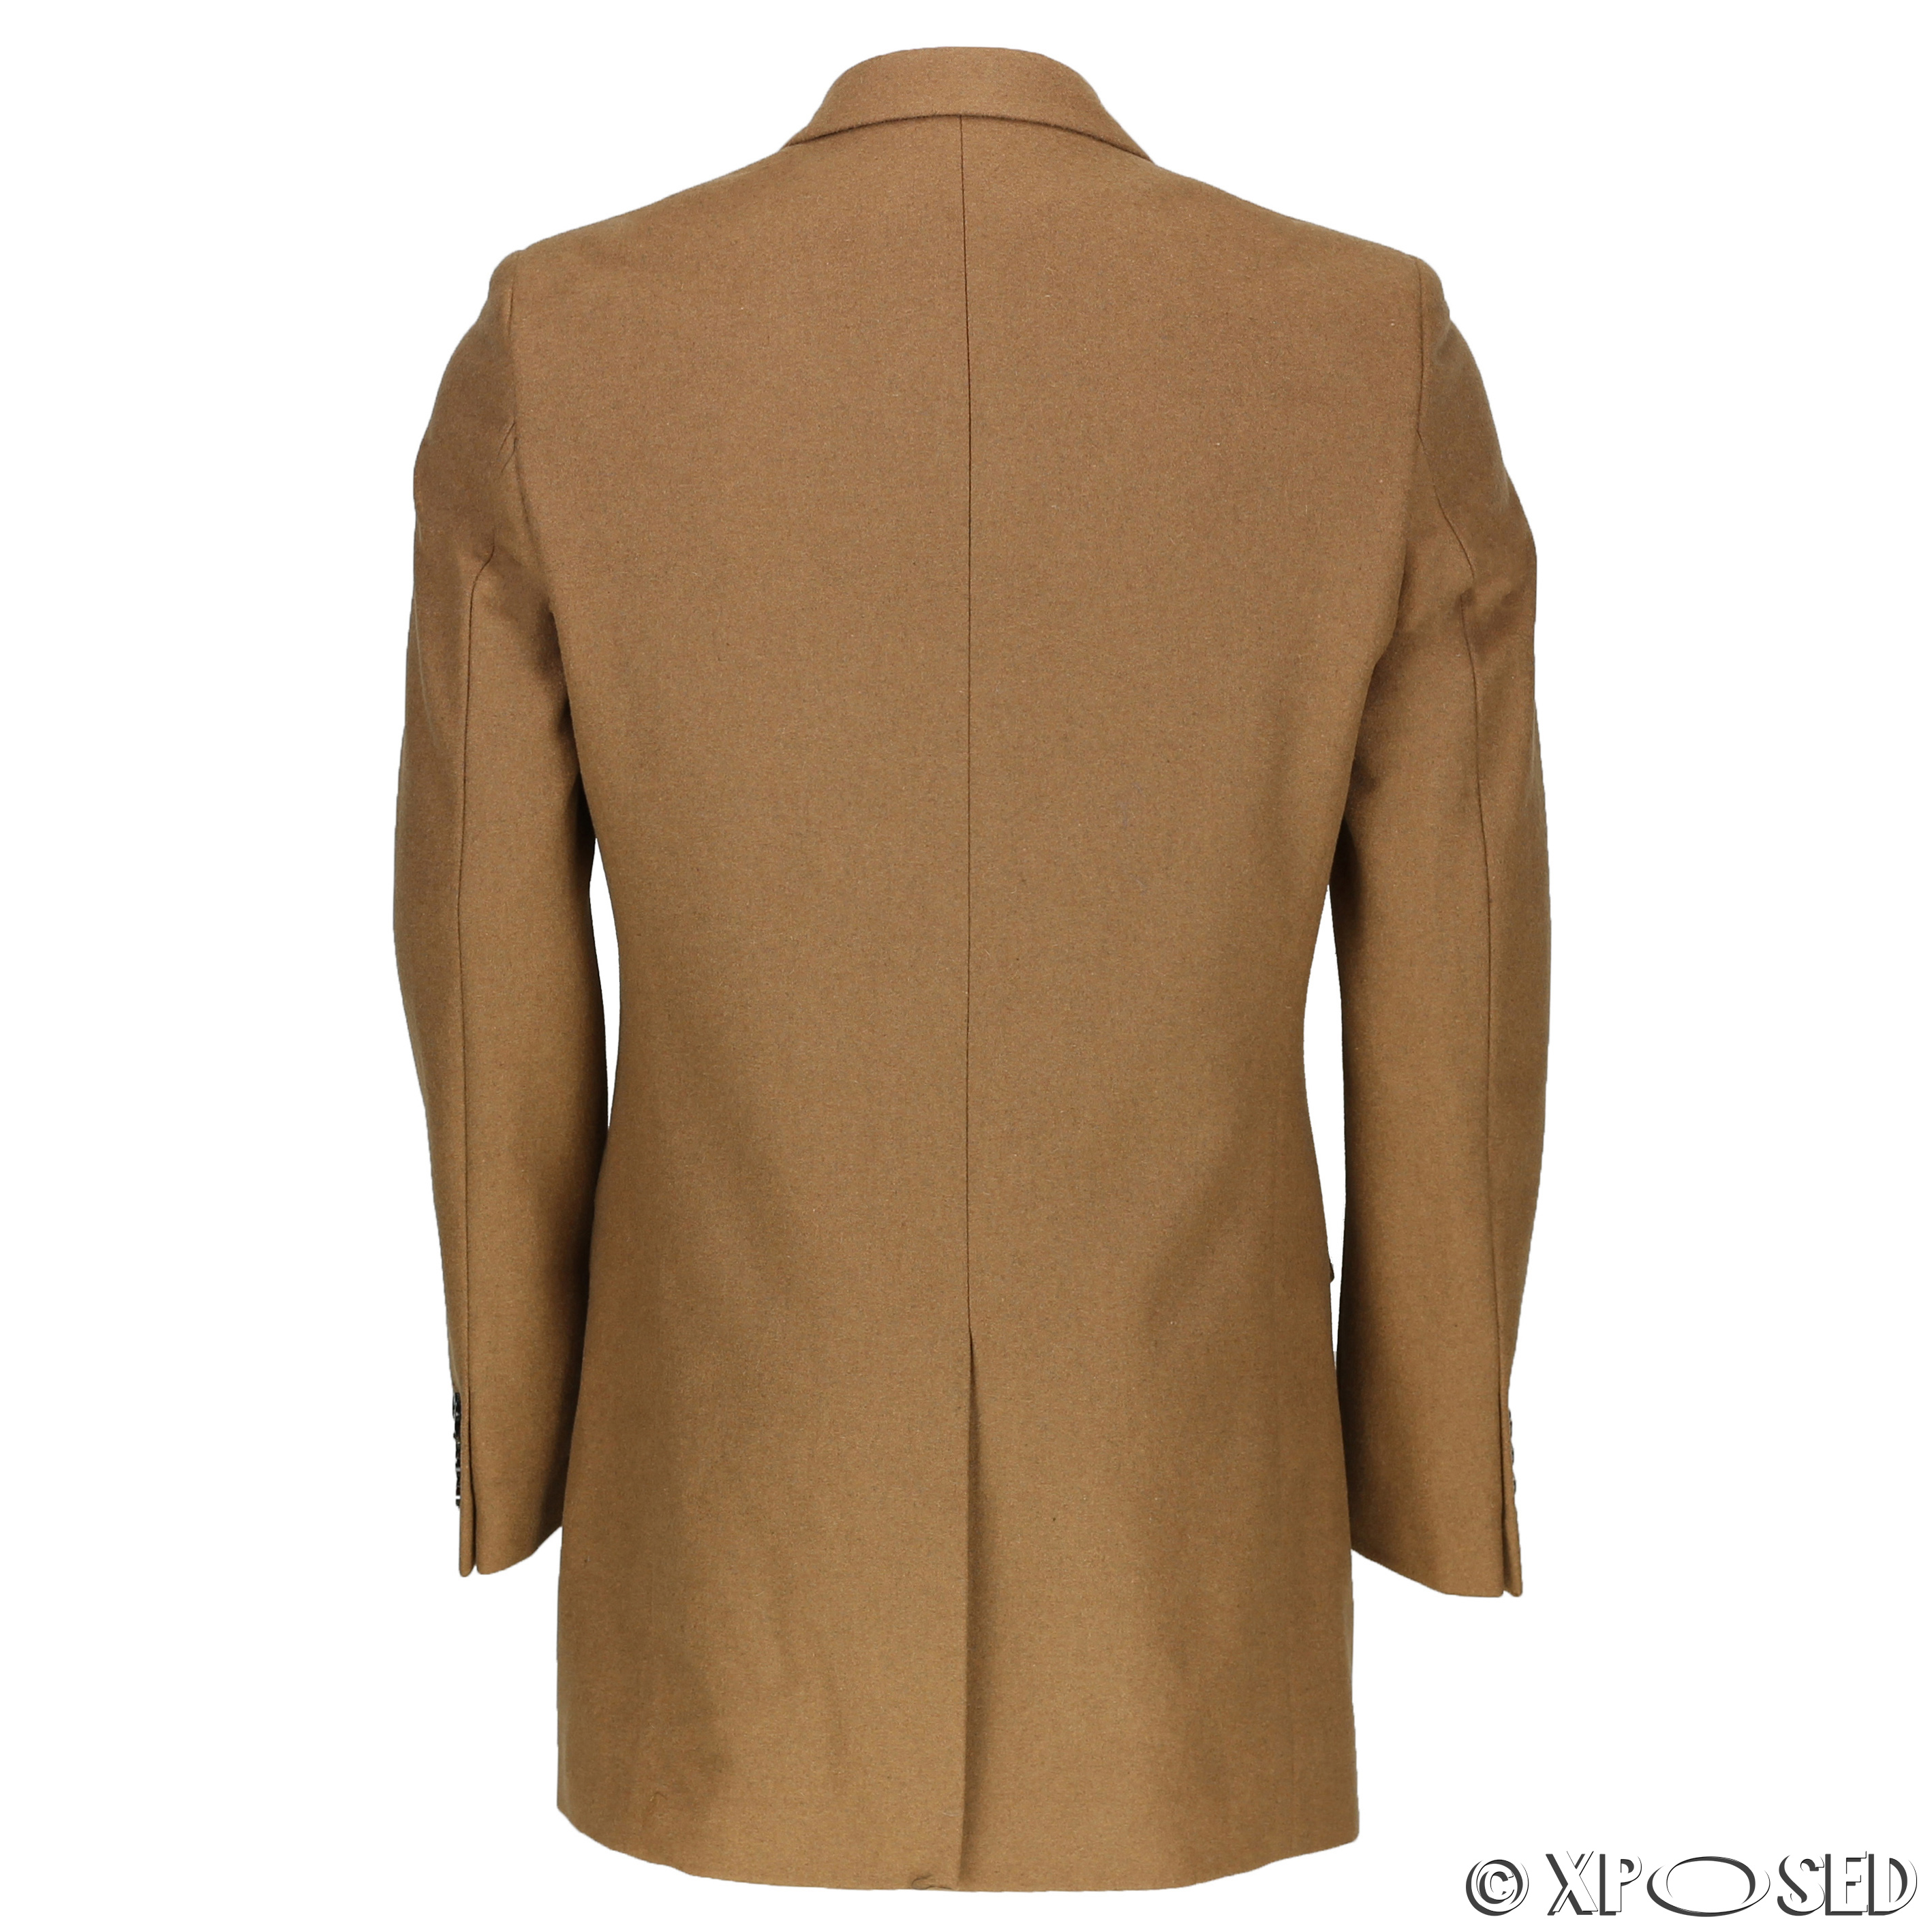 Camel coat is a special looking overcoat that is capable of attracting men who love tan and other such shades that gives a special look. The color of the coat is the best part about the whole thing and can make you feel how good it is to wear it everywhere you want to.